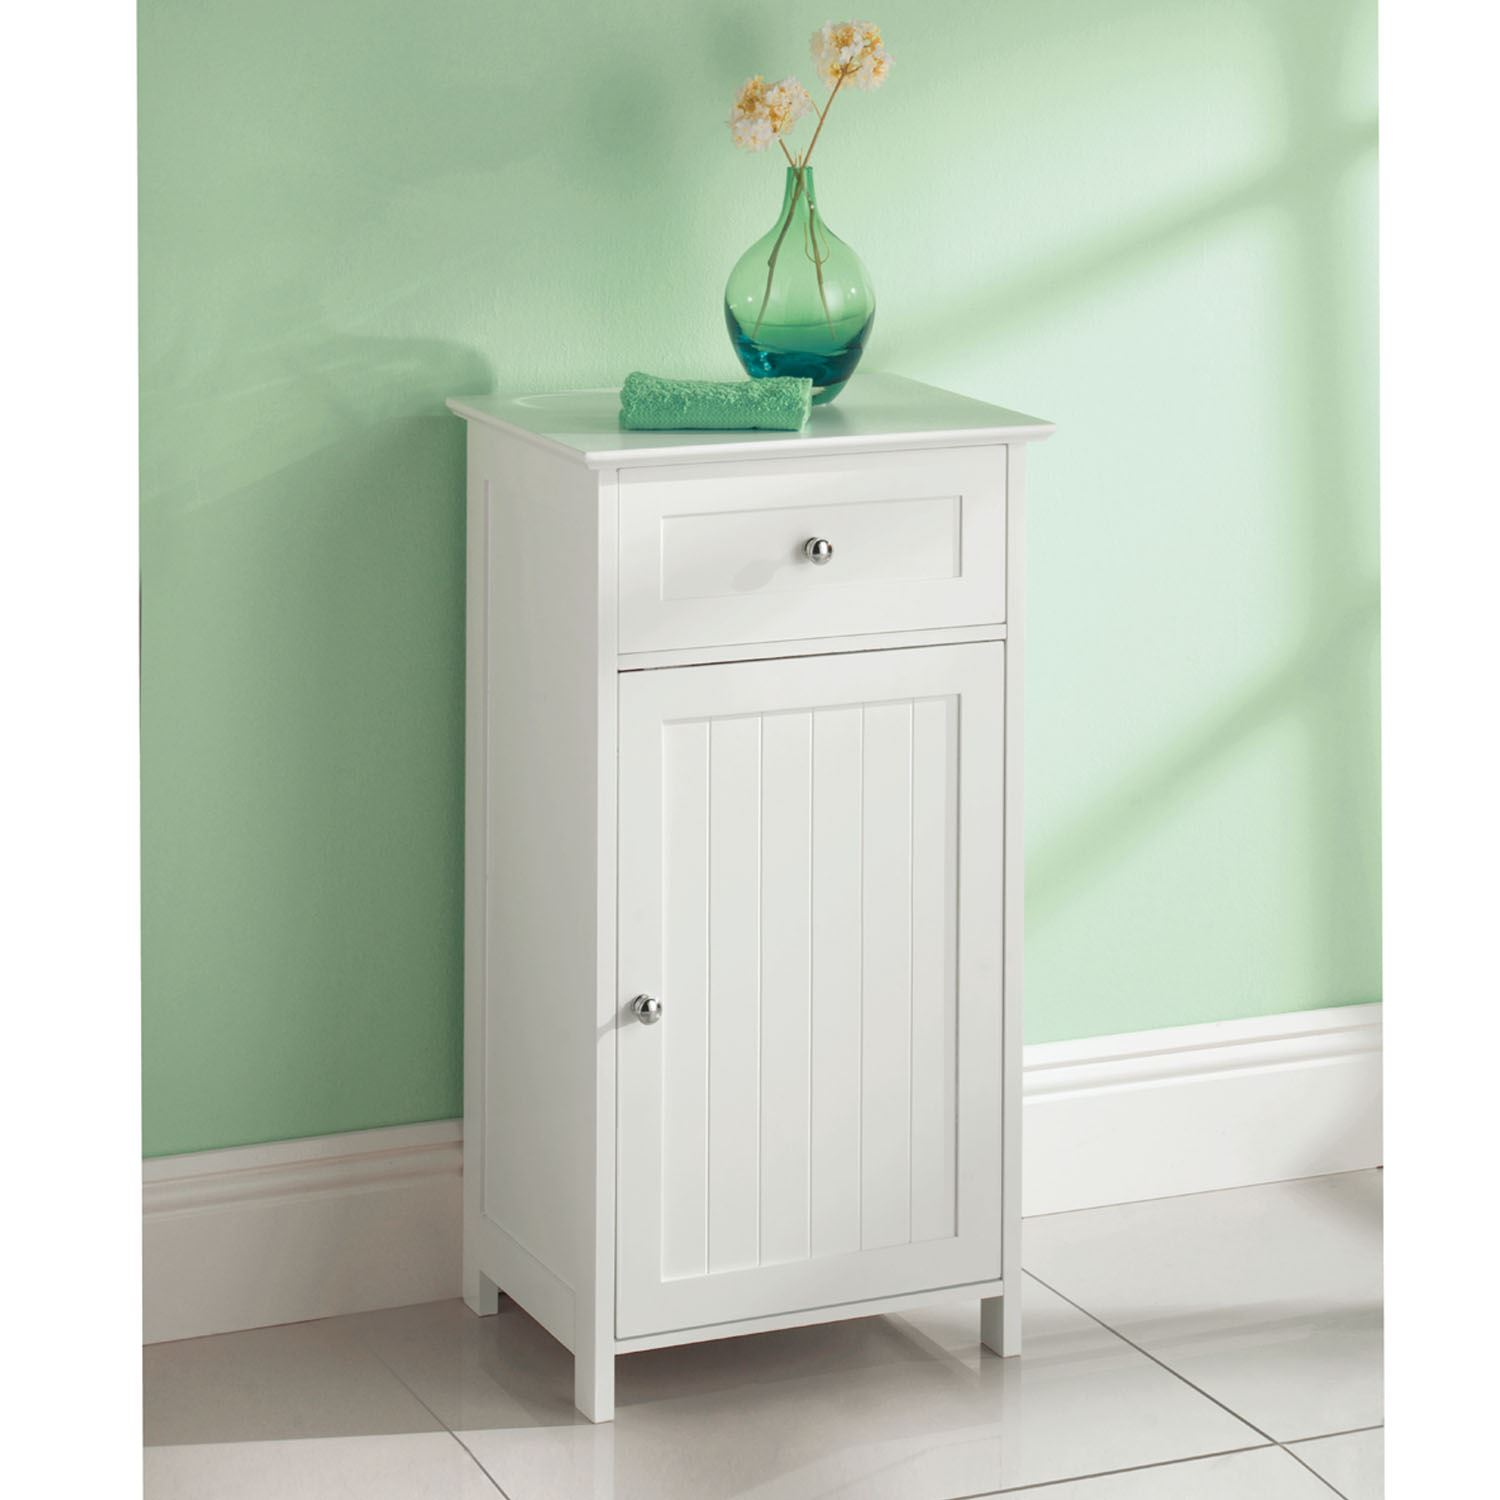 White Wooden Bathroom Cabinet Shelf Cupboard Bedroom Storage Unit Free Standing Ebay